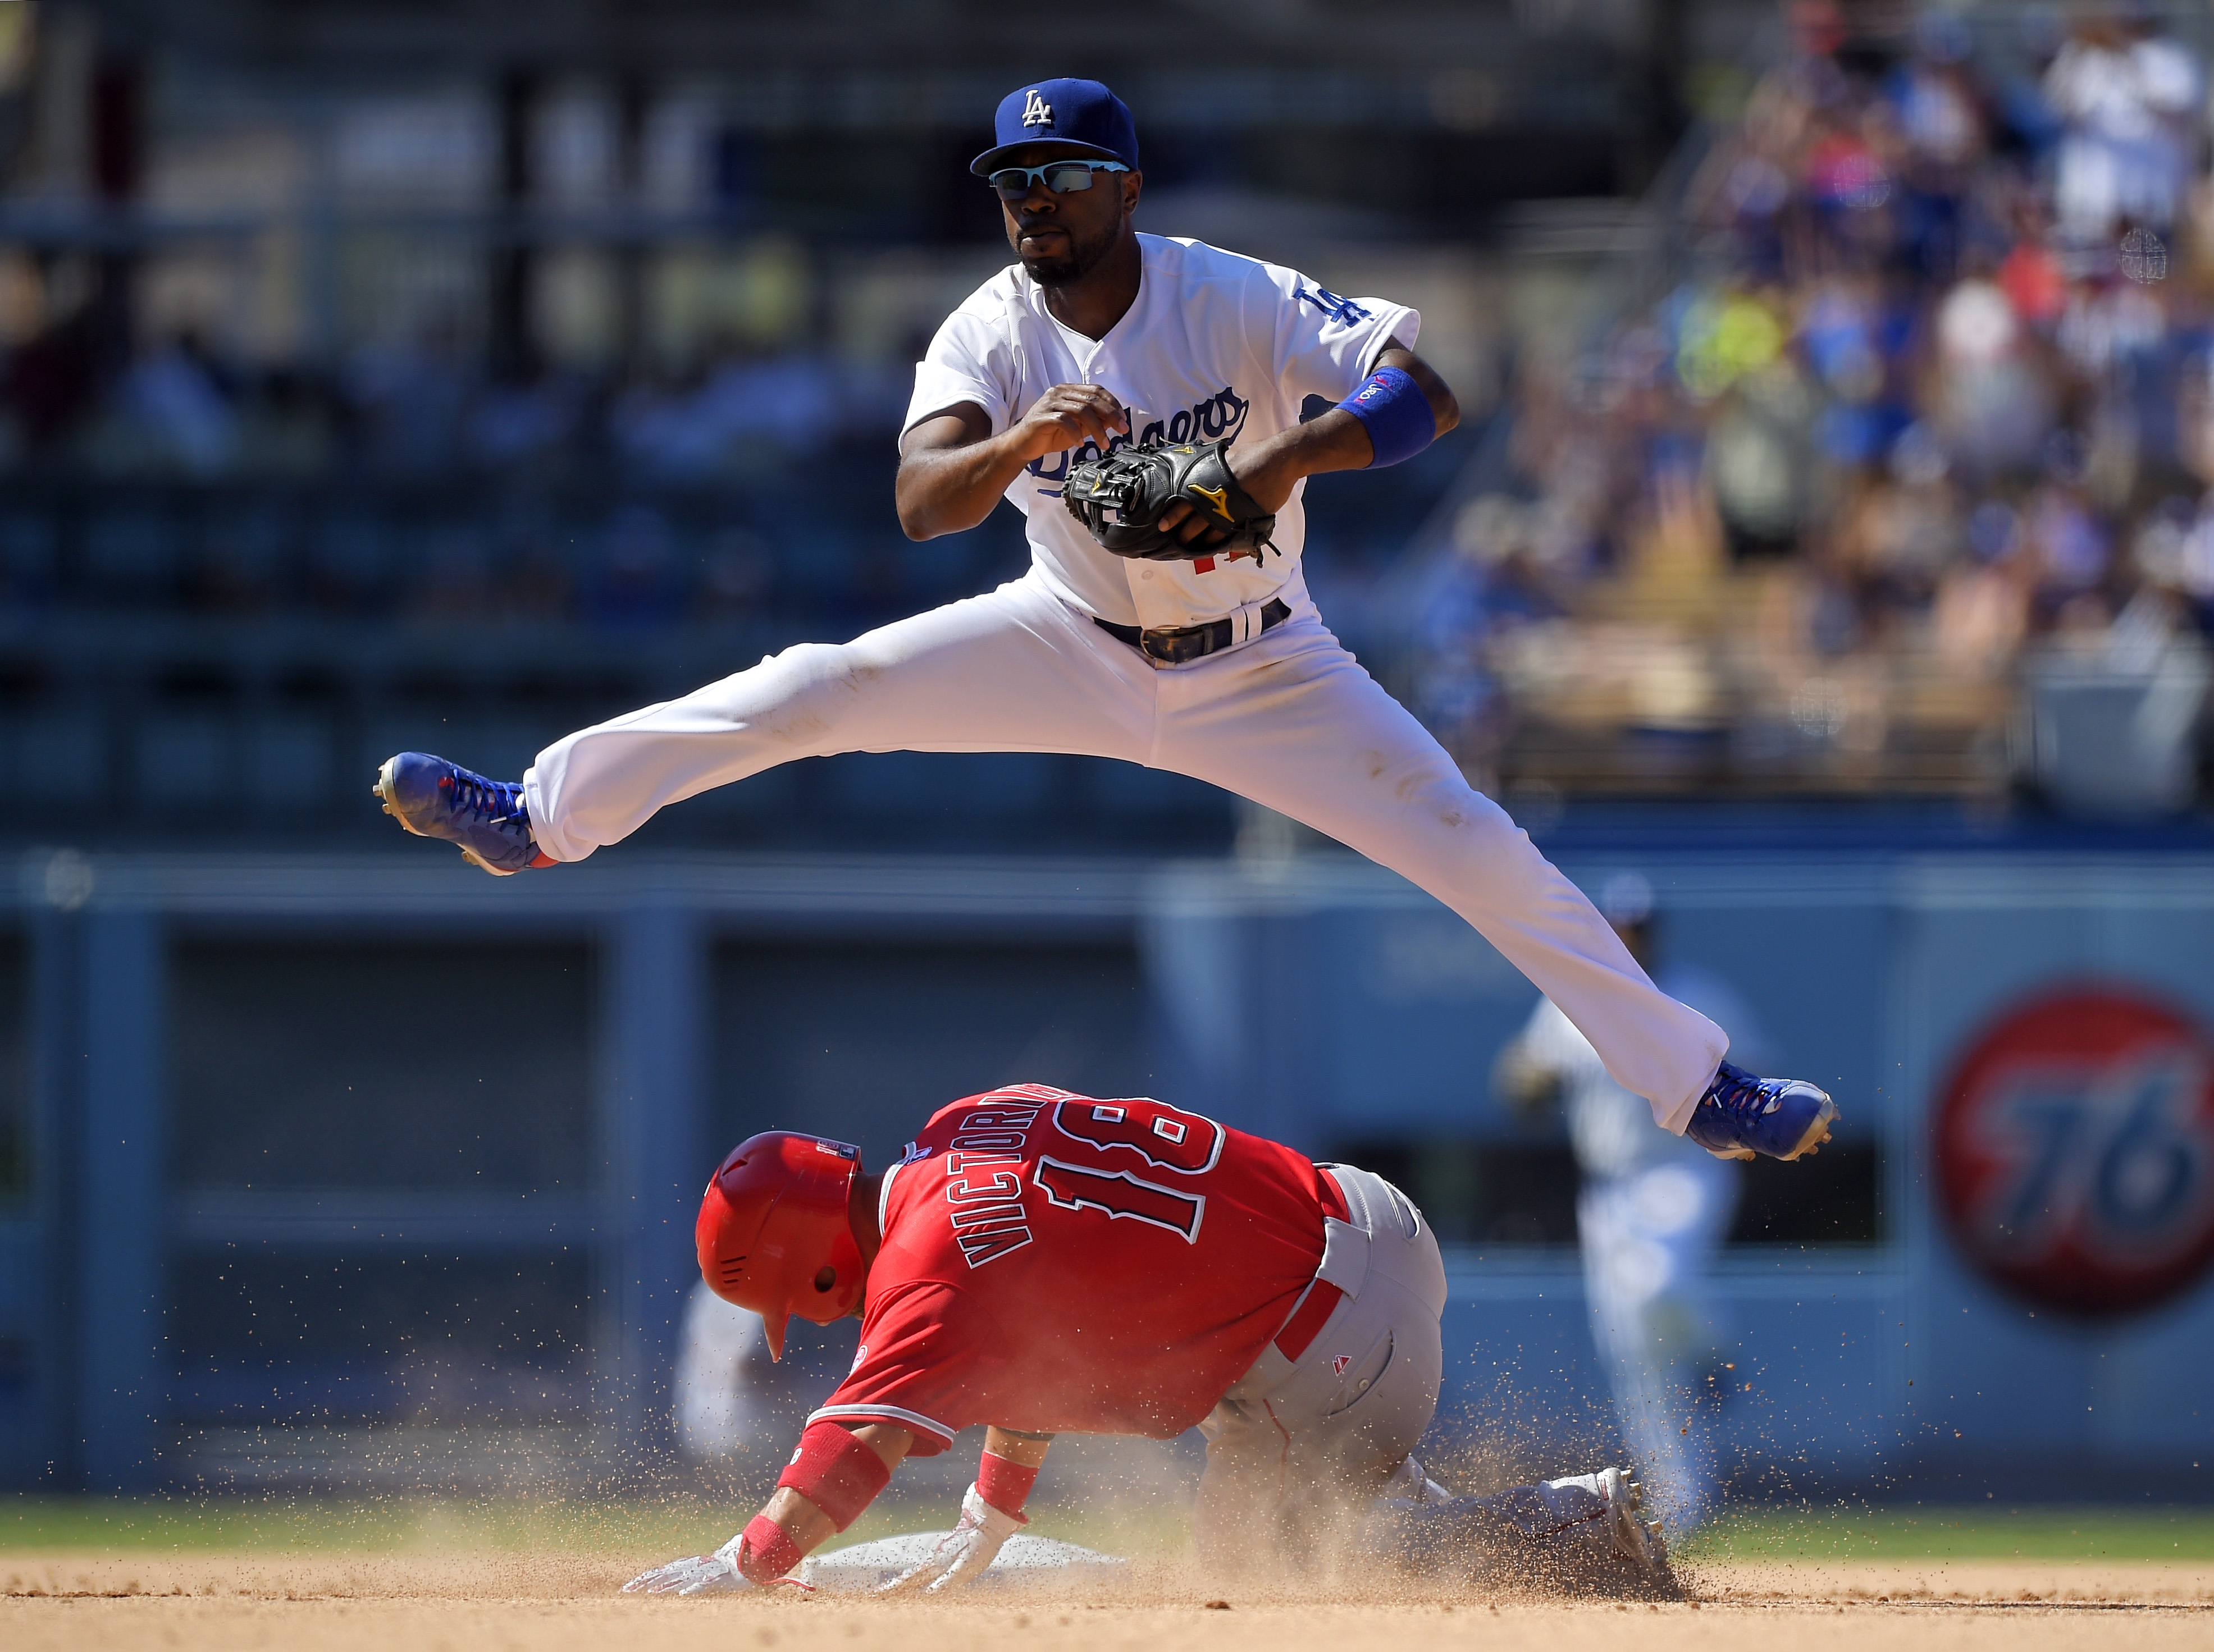 Los Angeles Angels Shane Victorino, below, is forced out at second as Los Angeles Dodgers shortstop Jimmy Rollins attempts to throw out Erick Aybar at first during the ninth inning of a baseball game, Sunday, Aug. 2, 2015, in Los Angeles. Aybar was safe a